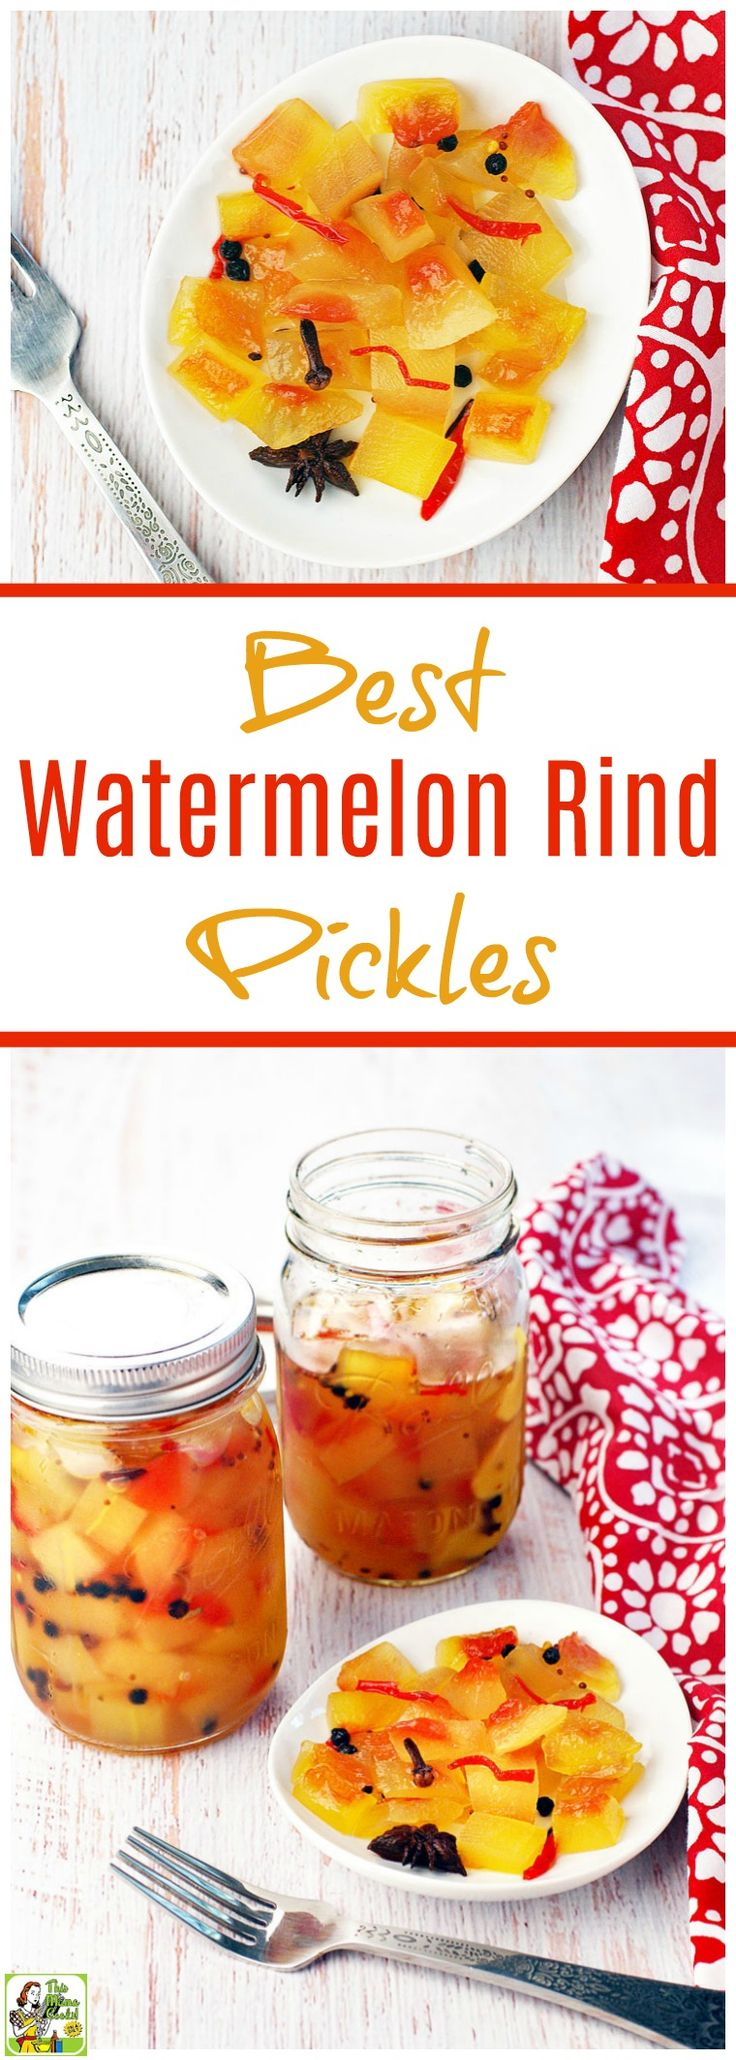 Wondering what to do with leftover watermelon rinds? Make this Best Watermelon Rind Pickles recipe! Click to get this easy spicy watermelon pickles recipe. This watermelon pickling recipe is easy to make. No special equipment needed.